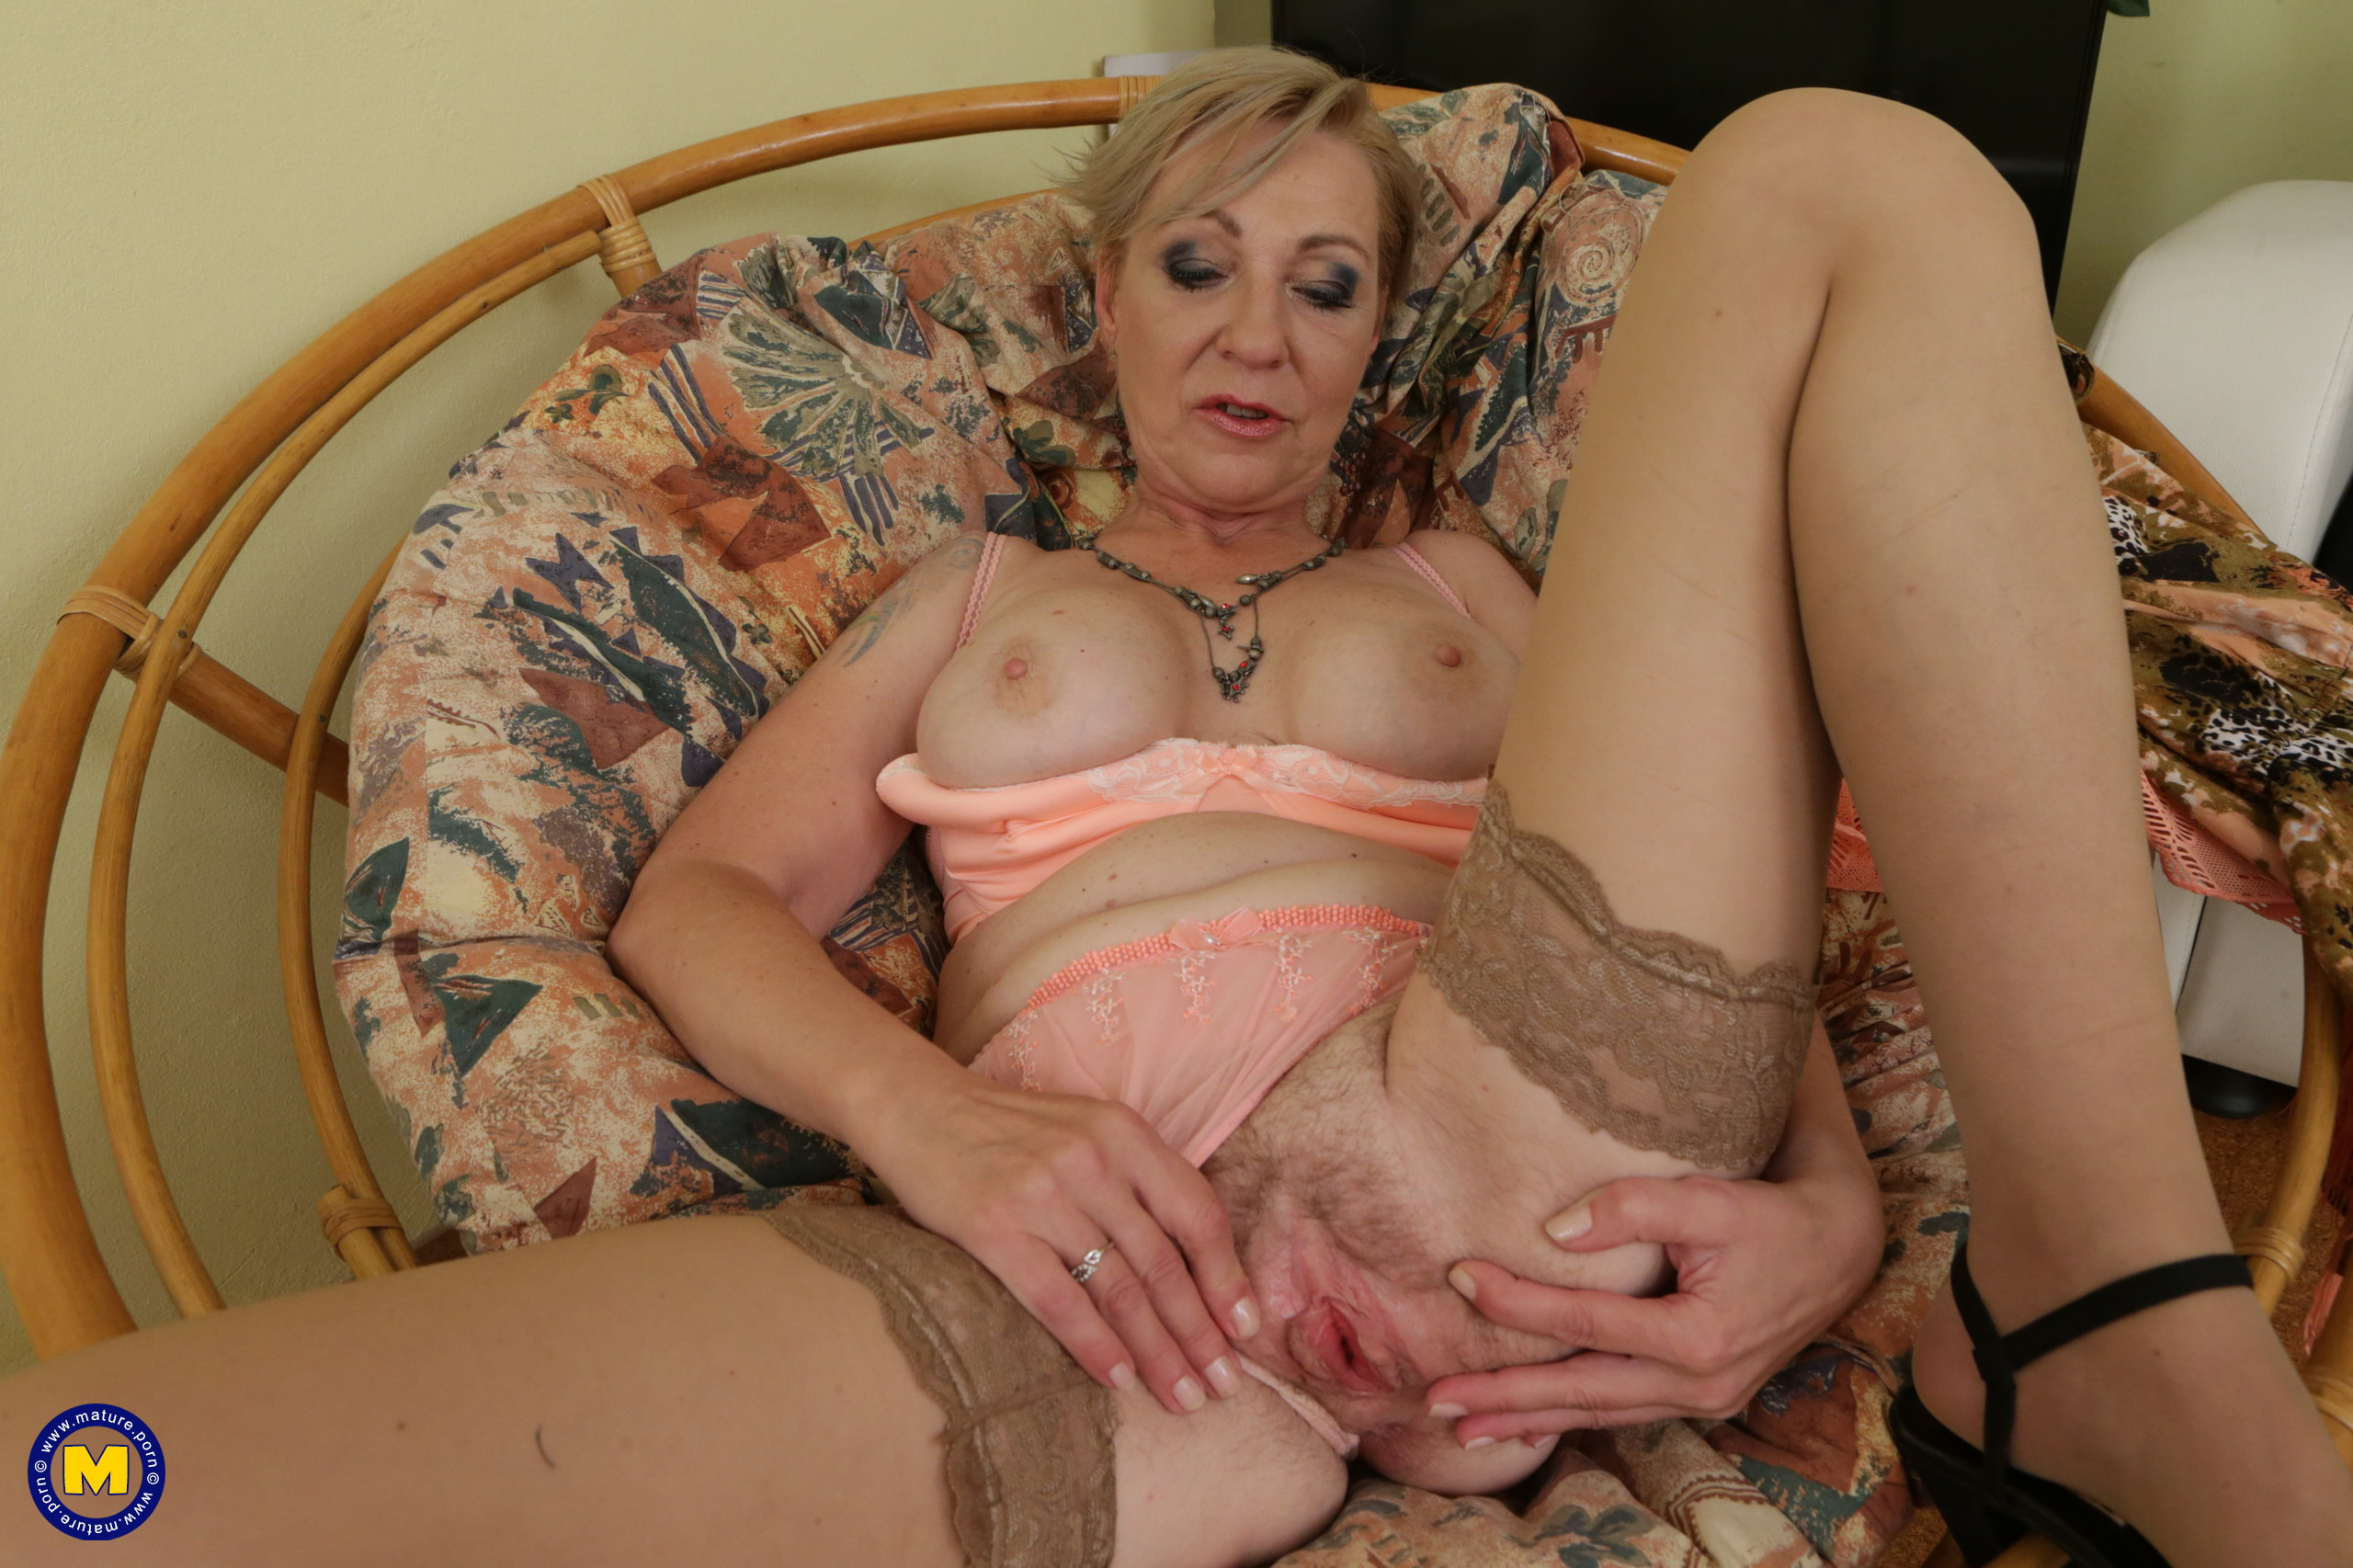 Fur covered housewife frolicking with her pussy